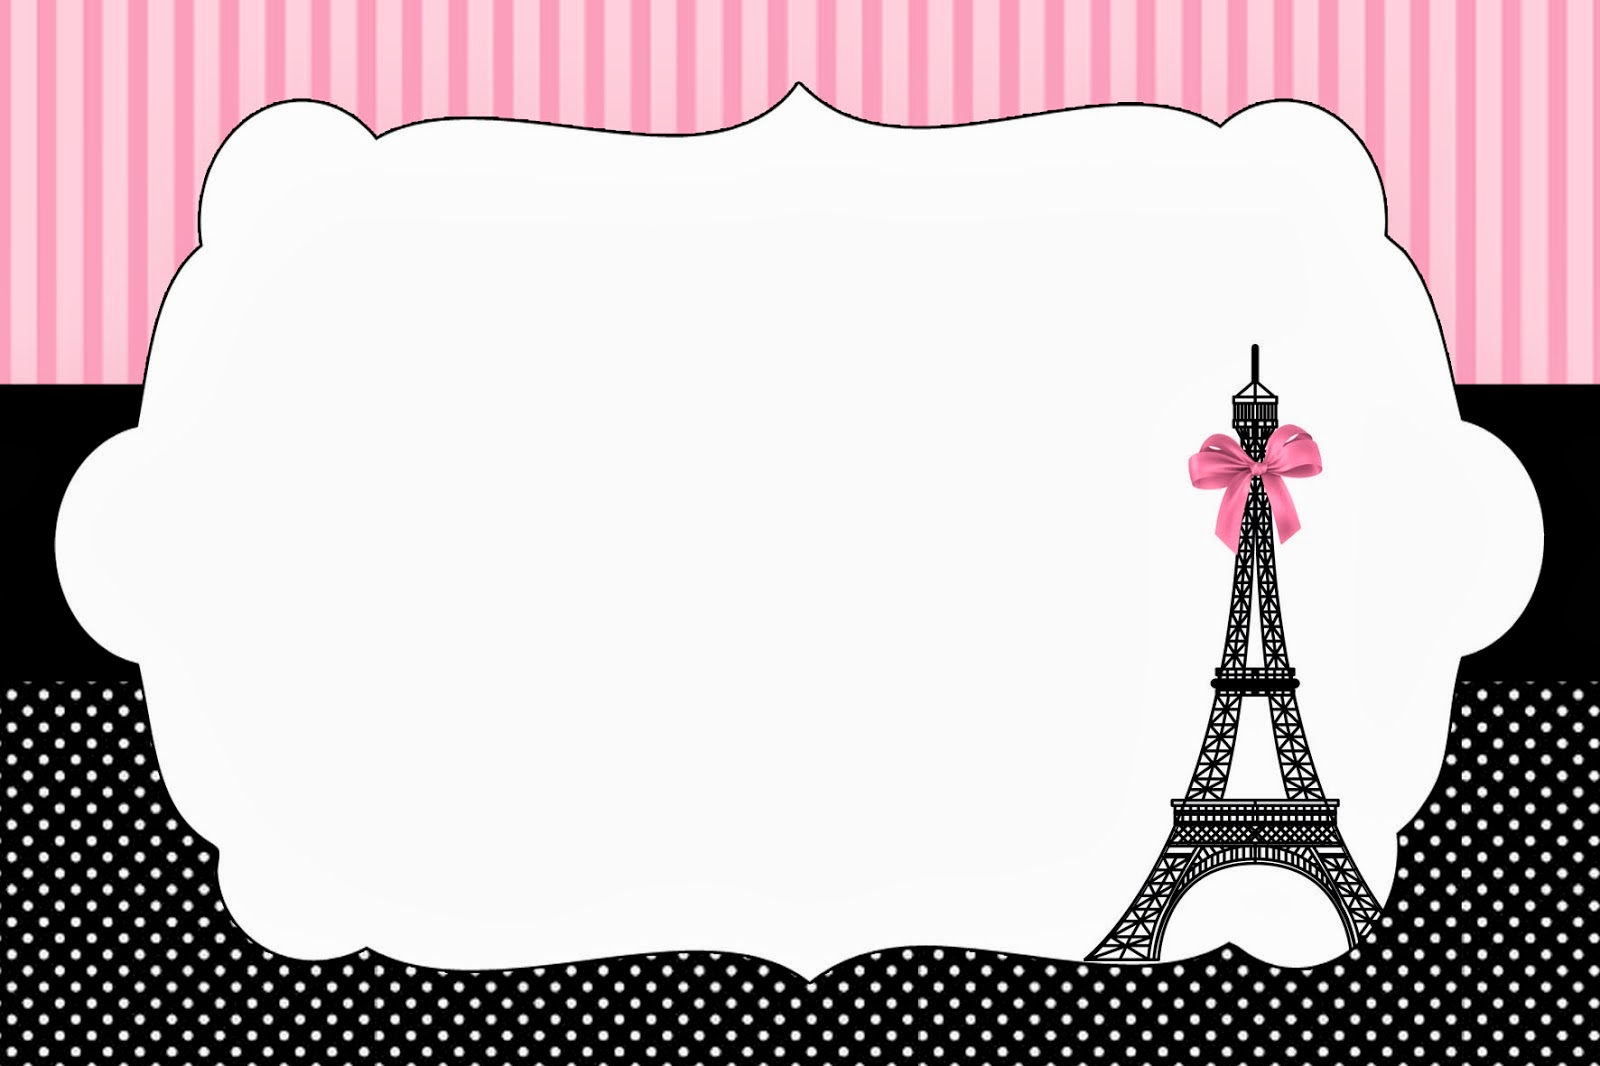 Paris invitations and free party printables is it for parties free paris party invitations solutioingenieria Choice Image